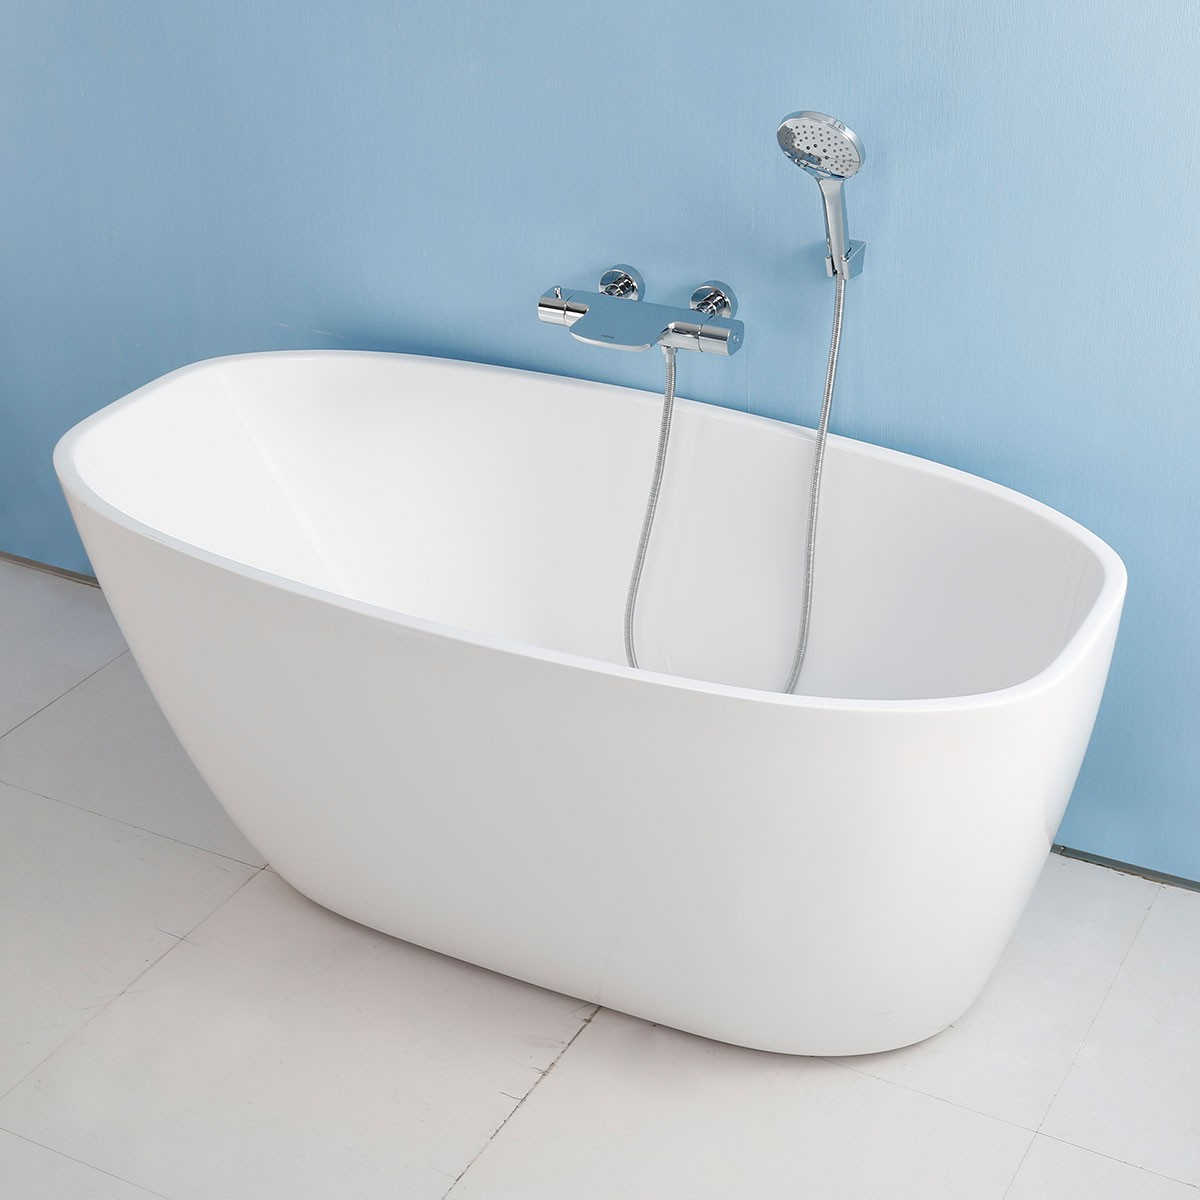 67 In Seamless Acrylic Freestanding Bathtub (AT-15776W)